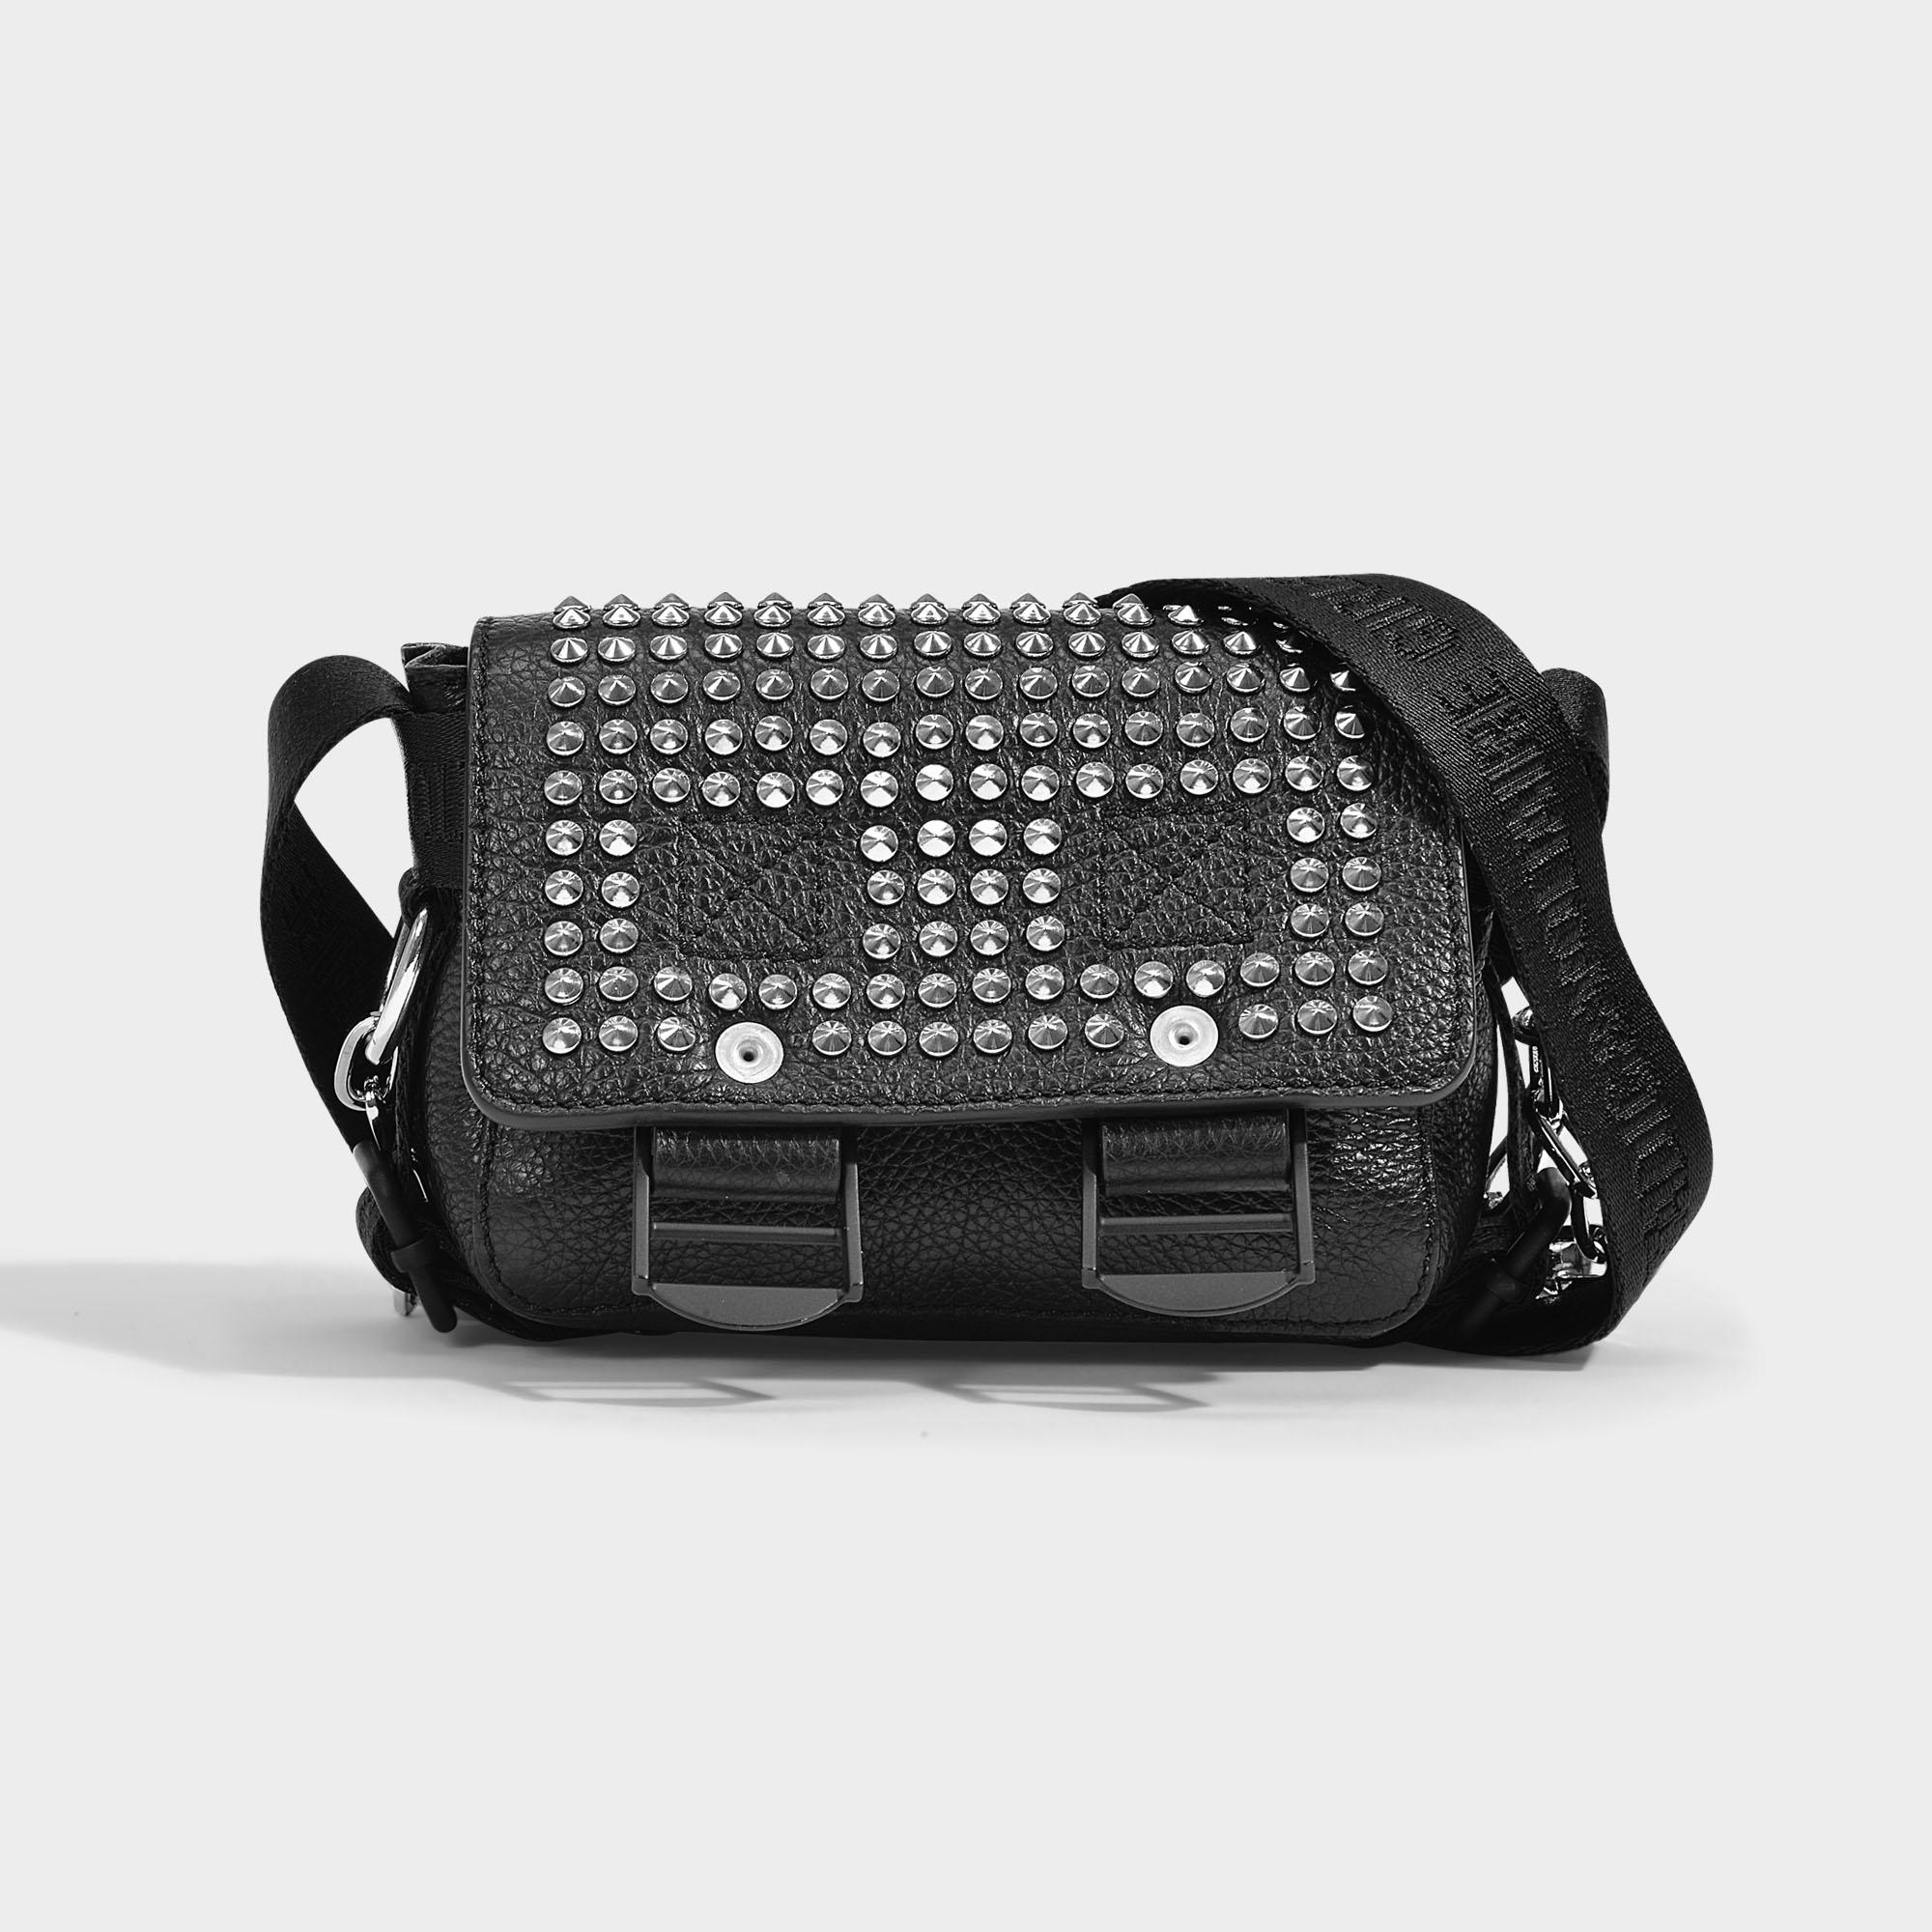 9e58739593 Black amp; In Nano Quilted Zadig Calf Leather Voltaire Readymade Bag SKwYyB